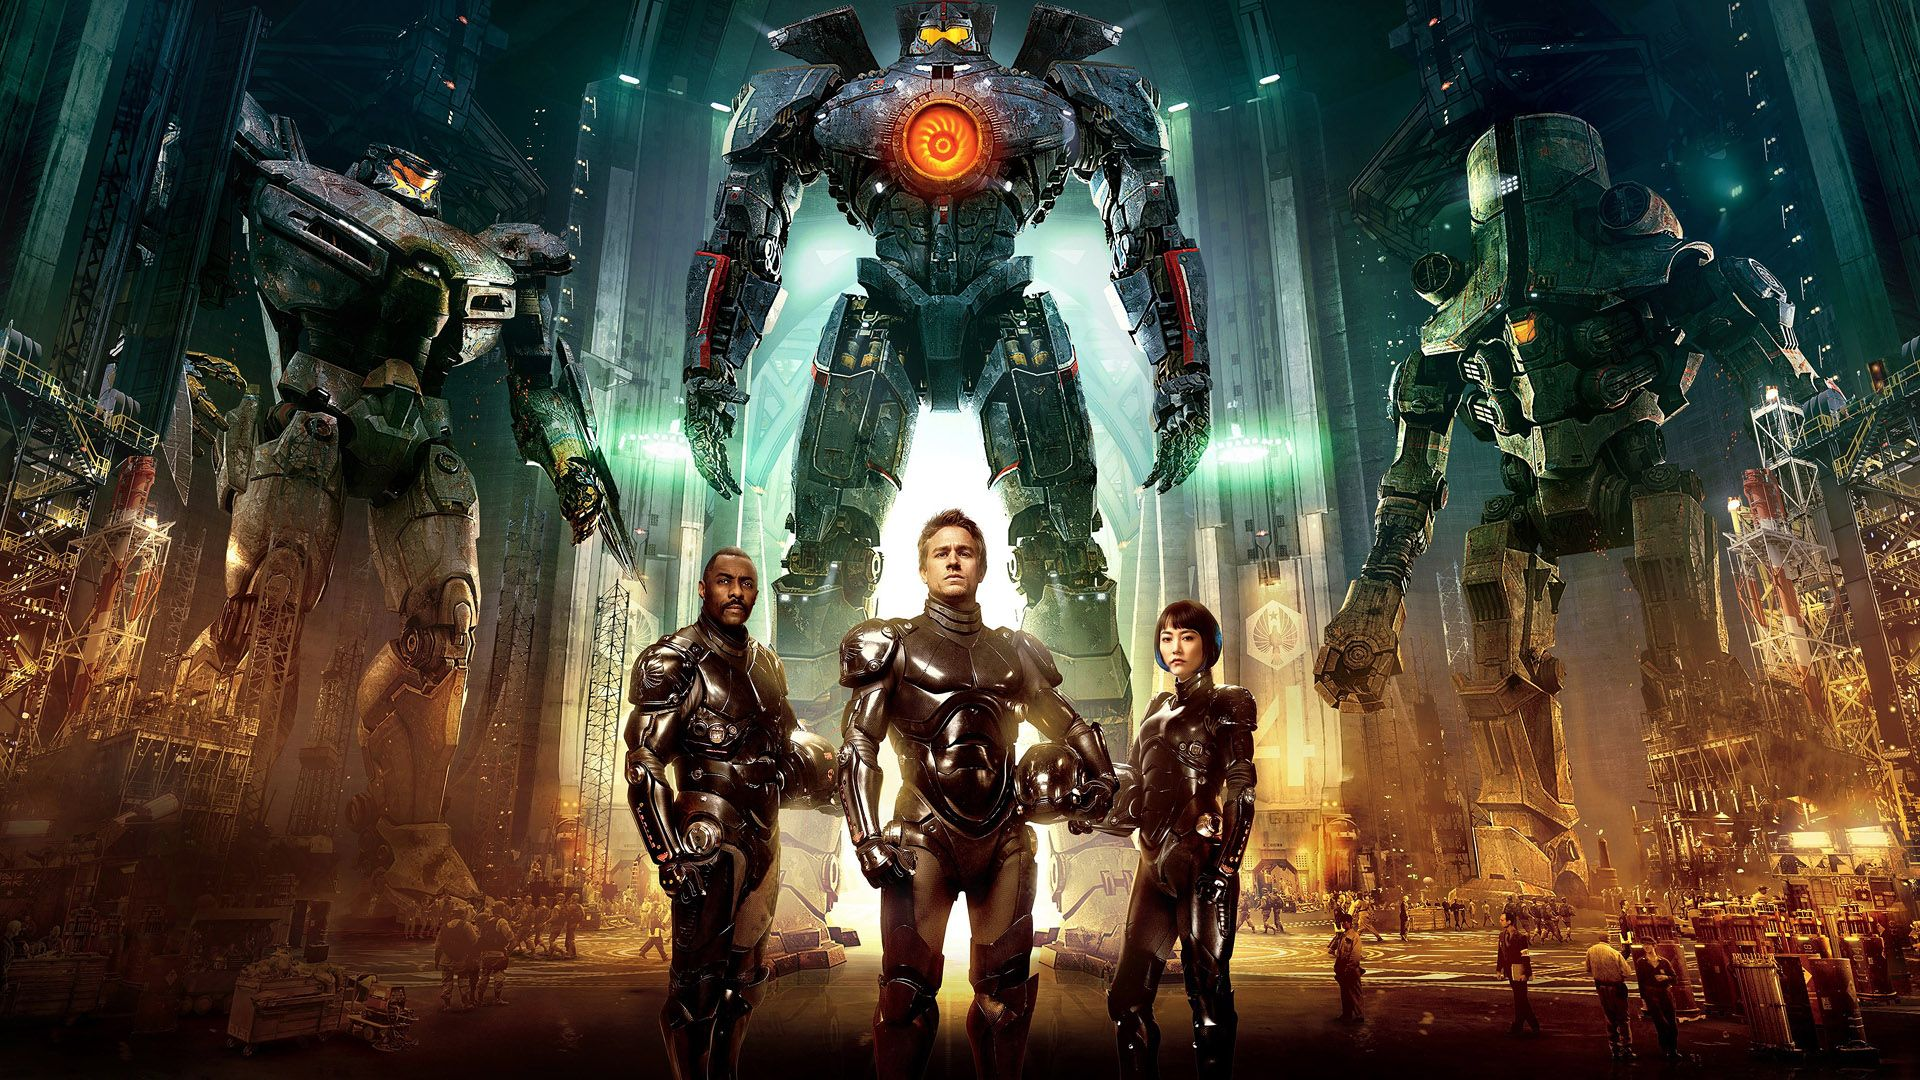 Guillermo Del Toro Says 'Pacific Rim 3' Is a Possibility, Provides Updates for 'Pacific Rim 2'